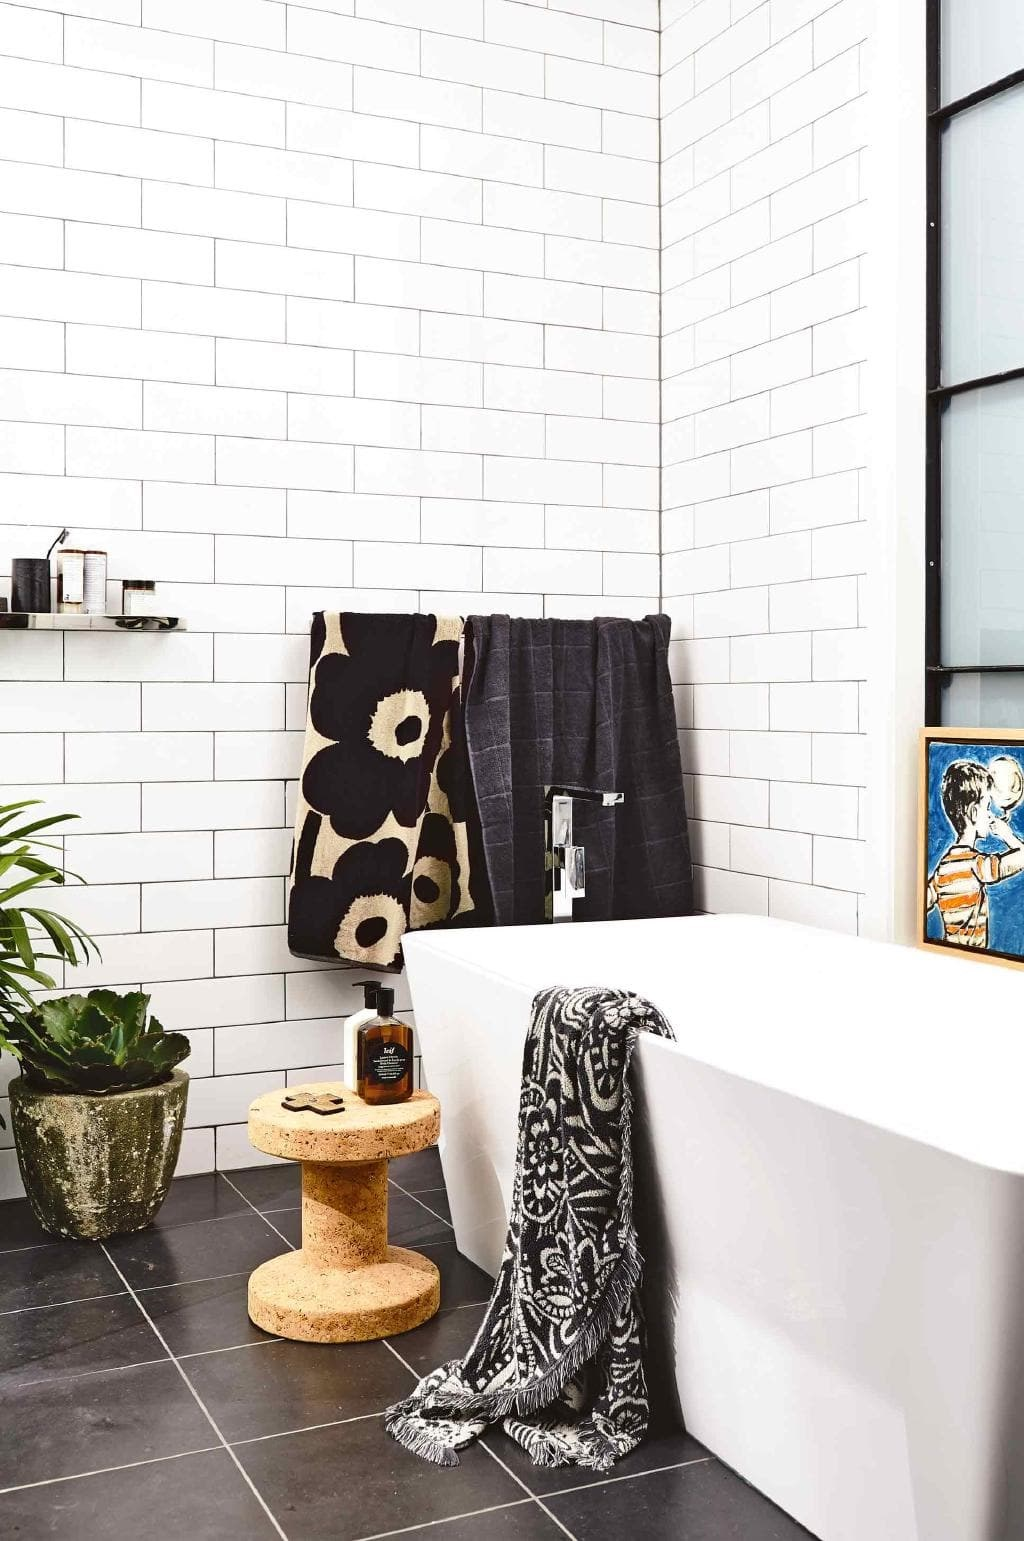 While a white bathroom will likely never go out of style, they can suffer from looking run-of-the-mill and clinical. Avoid this happening to you by accessorising with patterned towels and other textural objects like a cork stool or cement planter. *Photo: Derek Swalwell / Styling: Rachel Vigor*